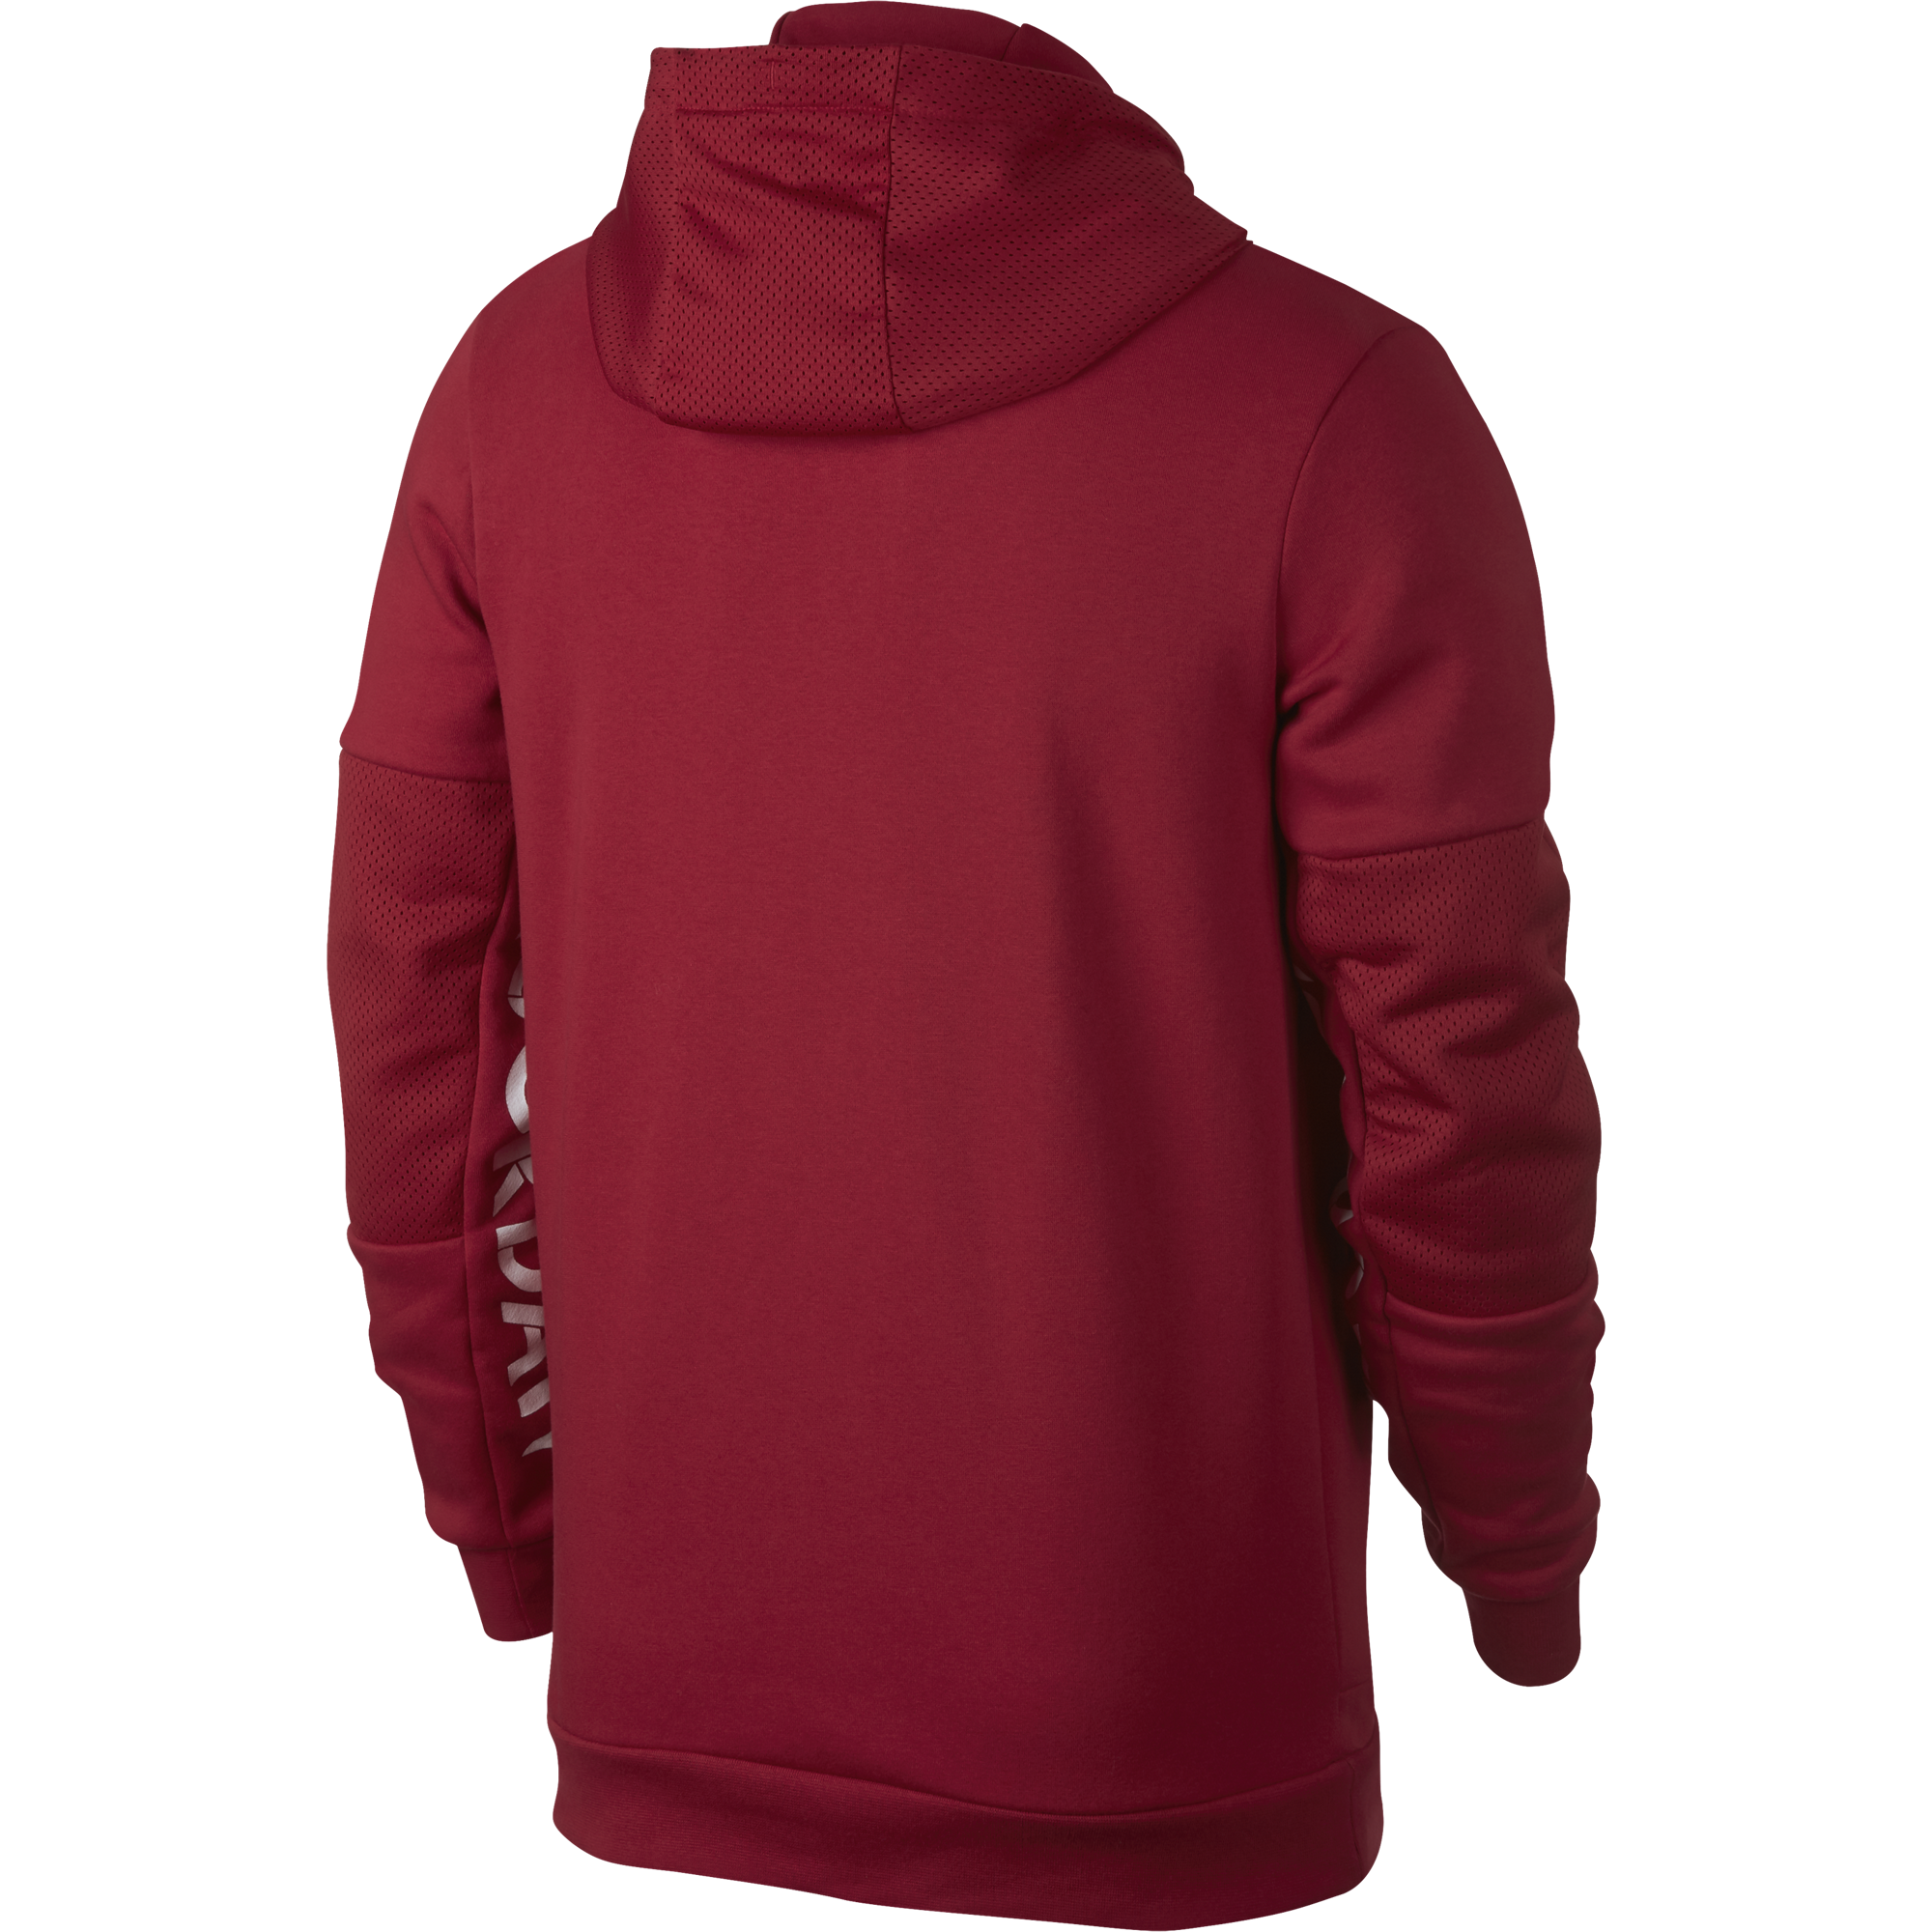 e782e5222bb4 AIR JORDAN SPORTSWEAR JUMPMAN HYBRID FLEECE PULLOVER for S 110.00 ...